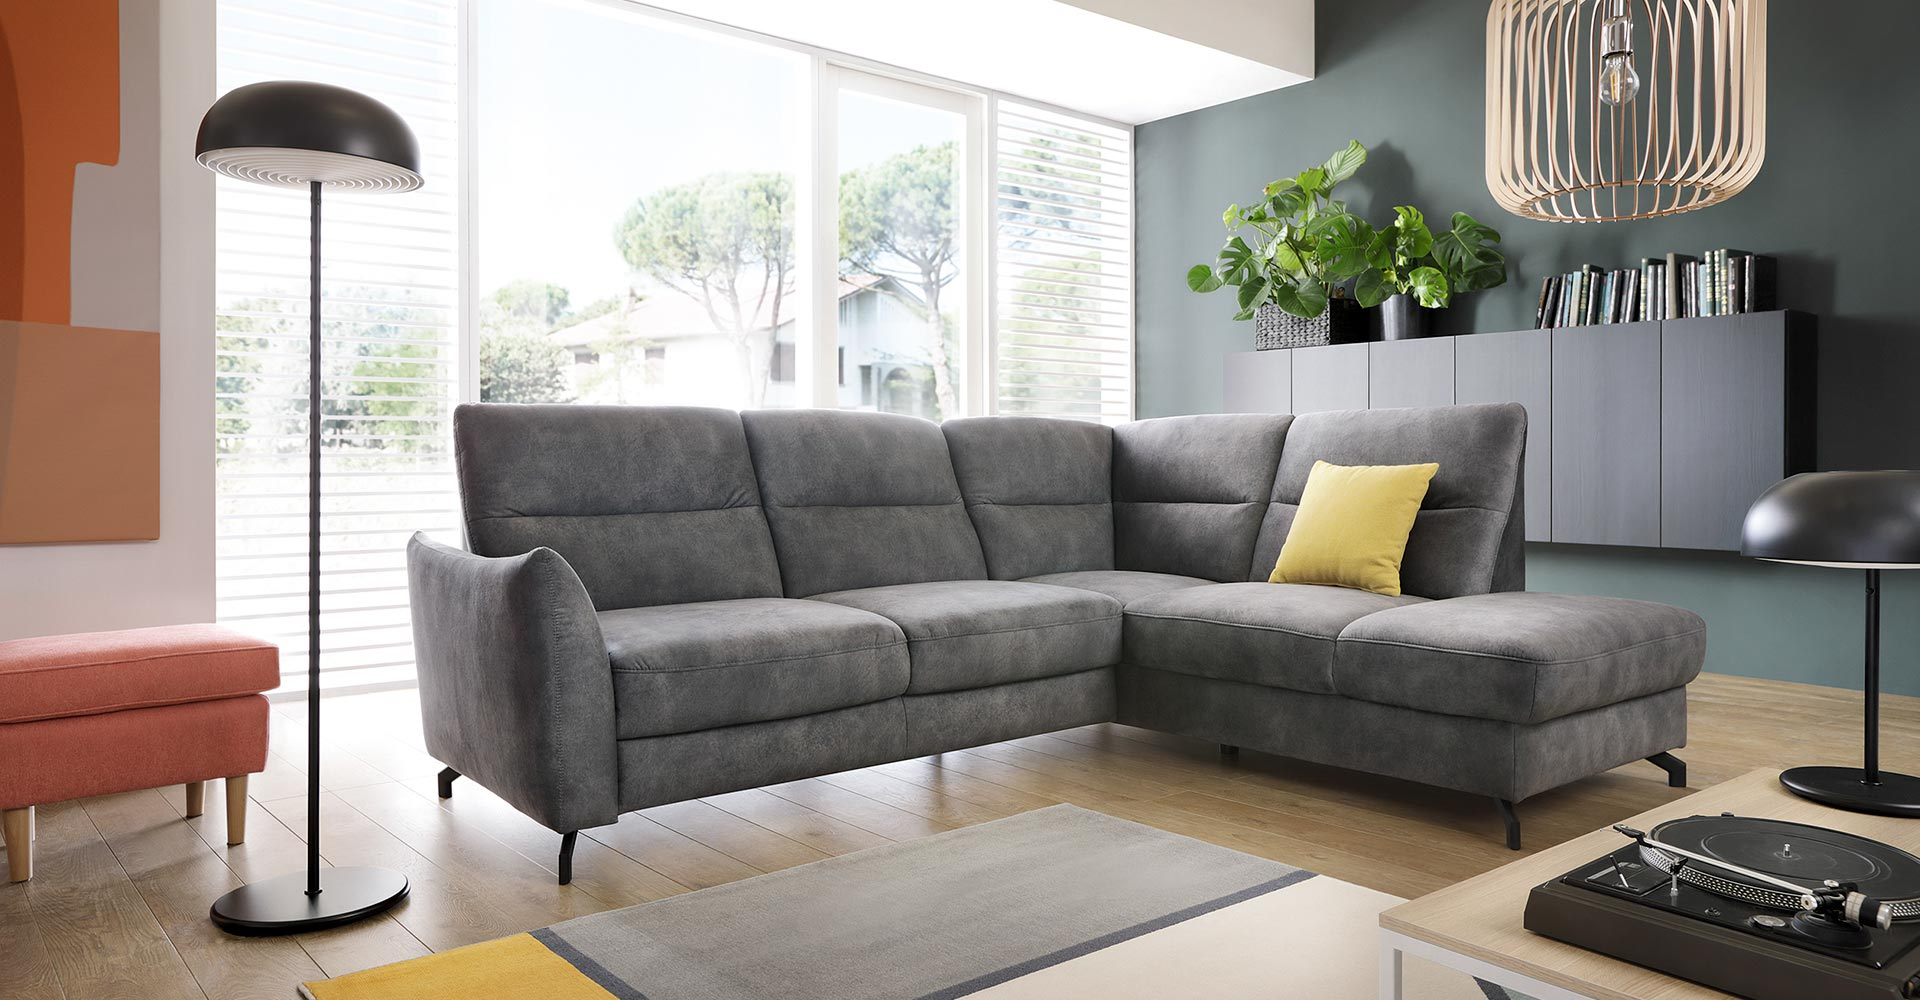 SOFA's reveal.  Look deeper, explore, and let them meet to your expectations. - get inspired by Smart Furniture online store